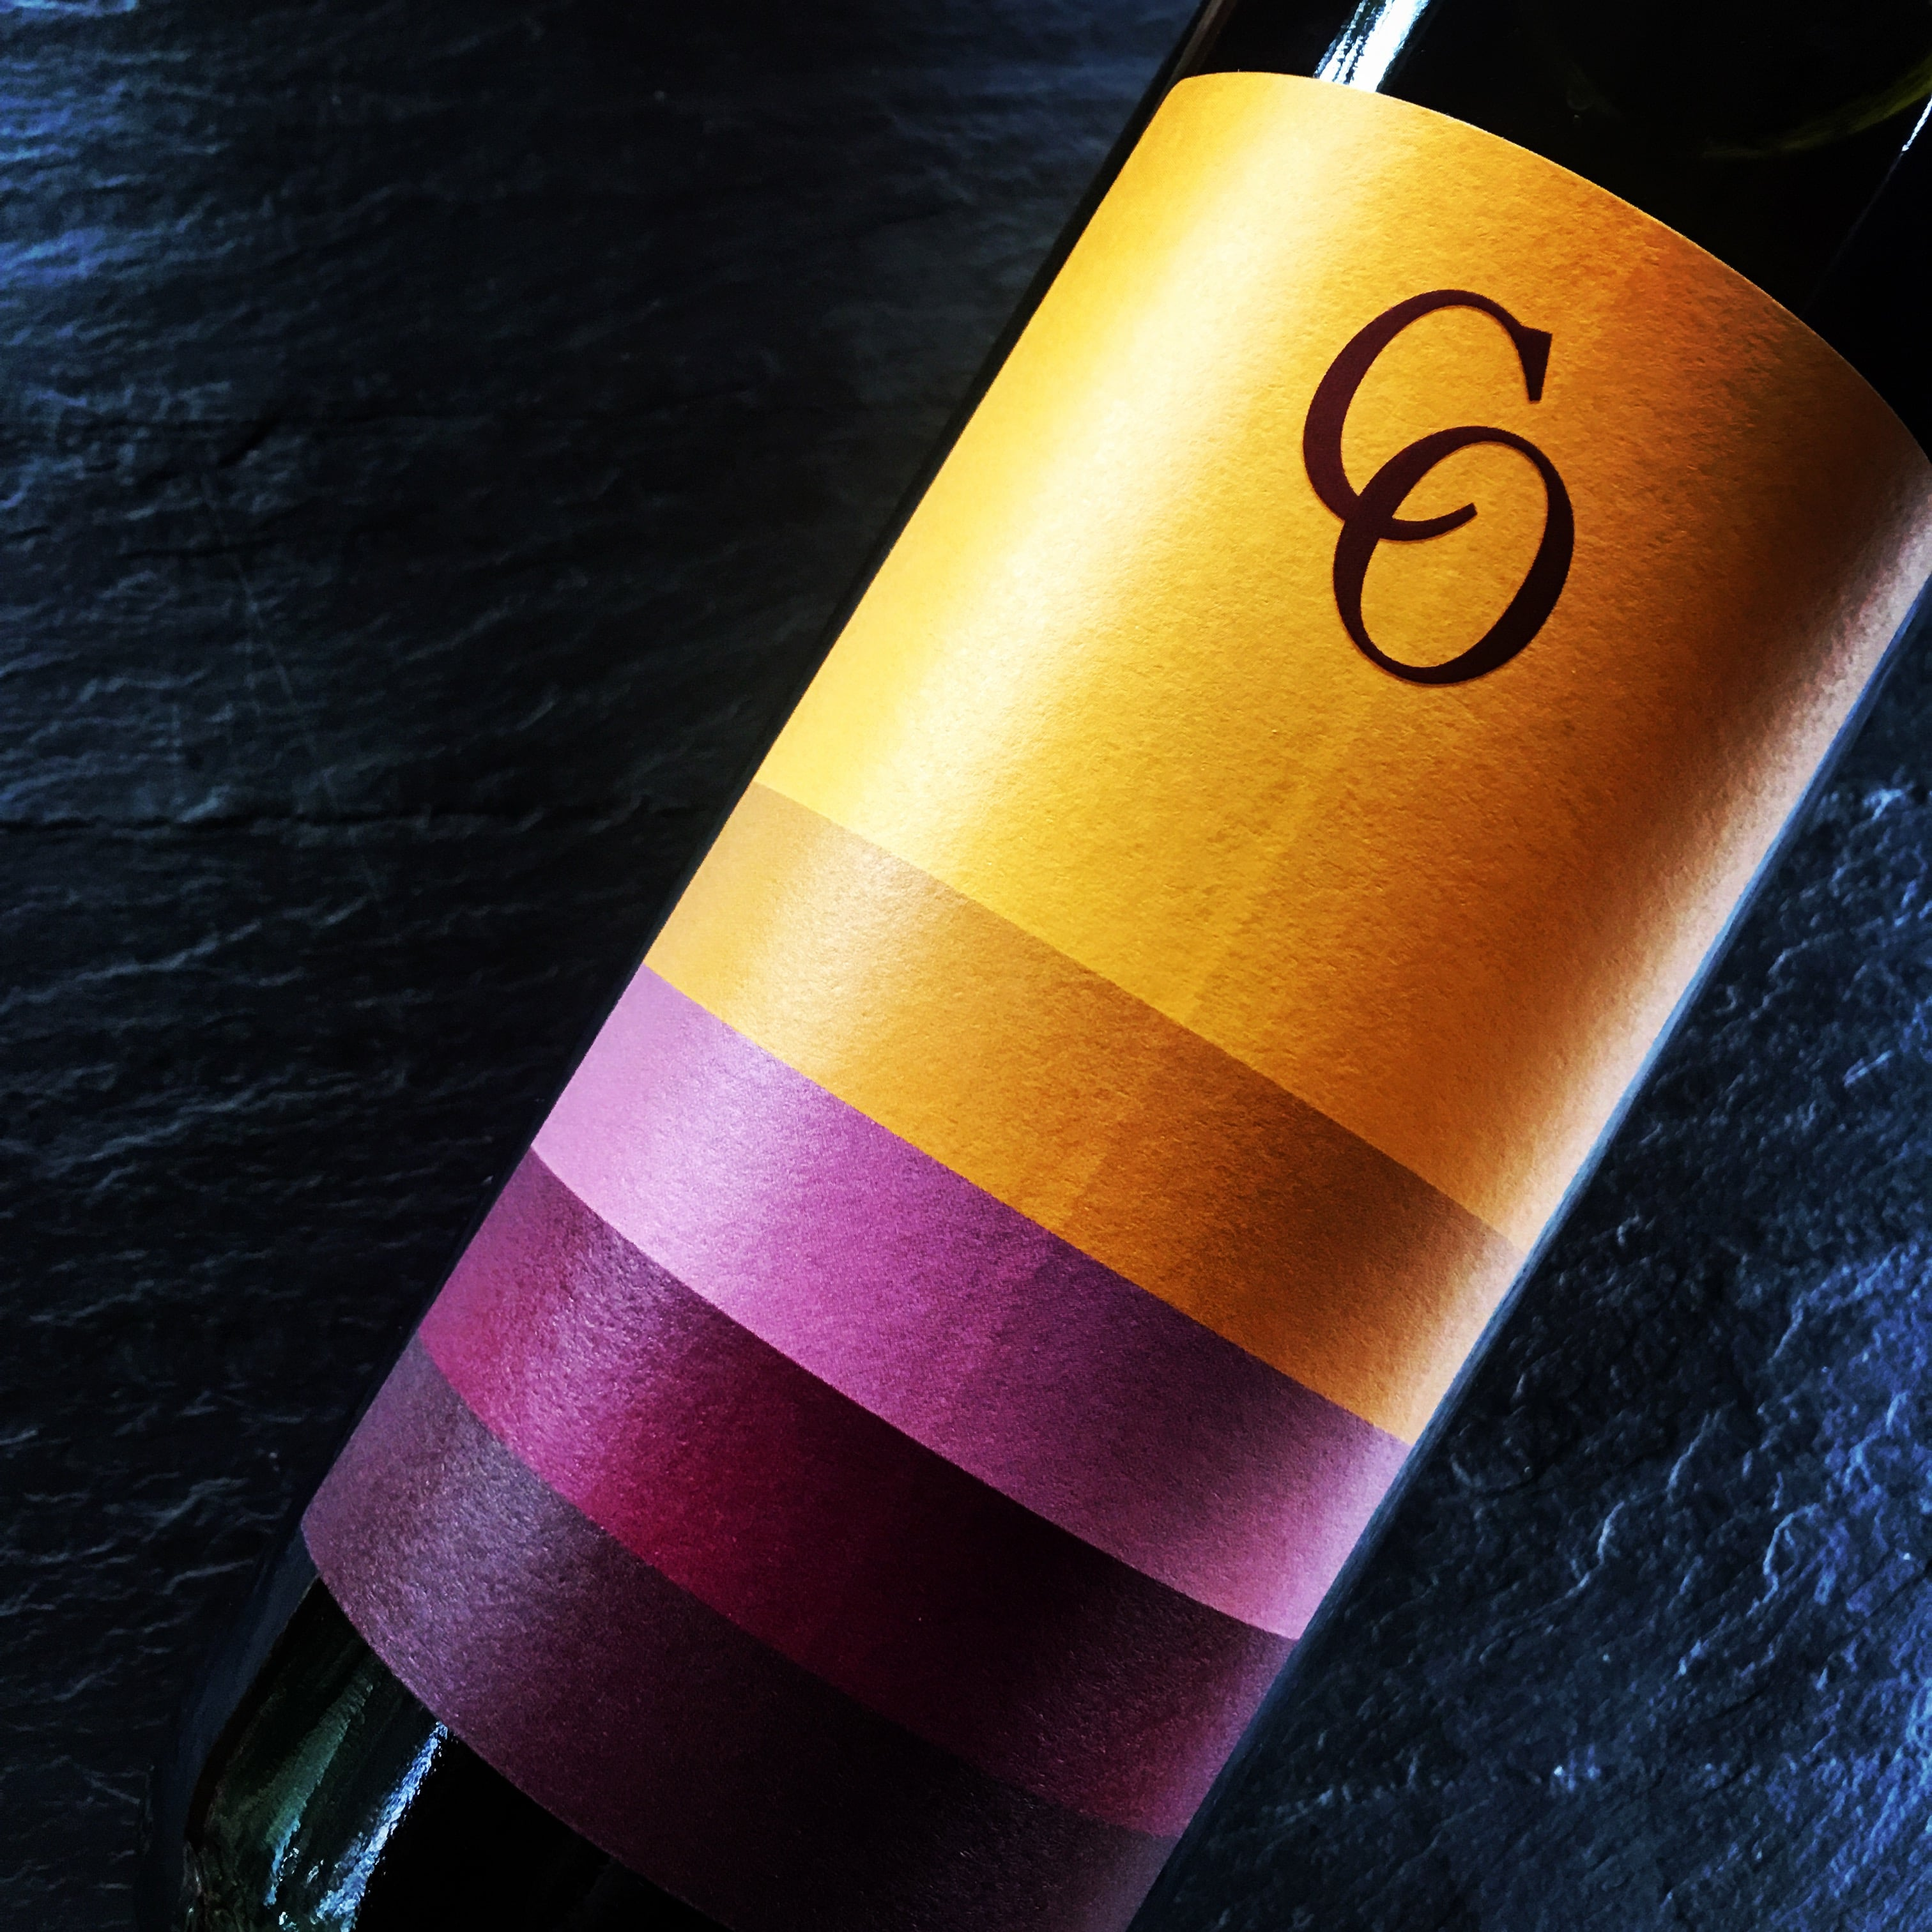 Coronica 'CO' Dry Red Wine 2014